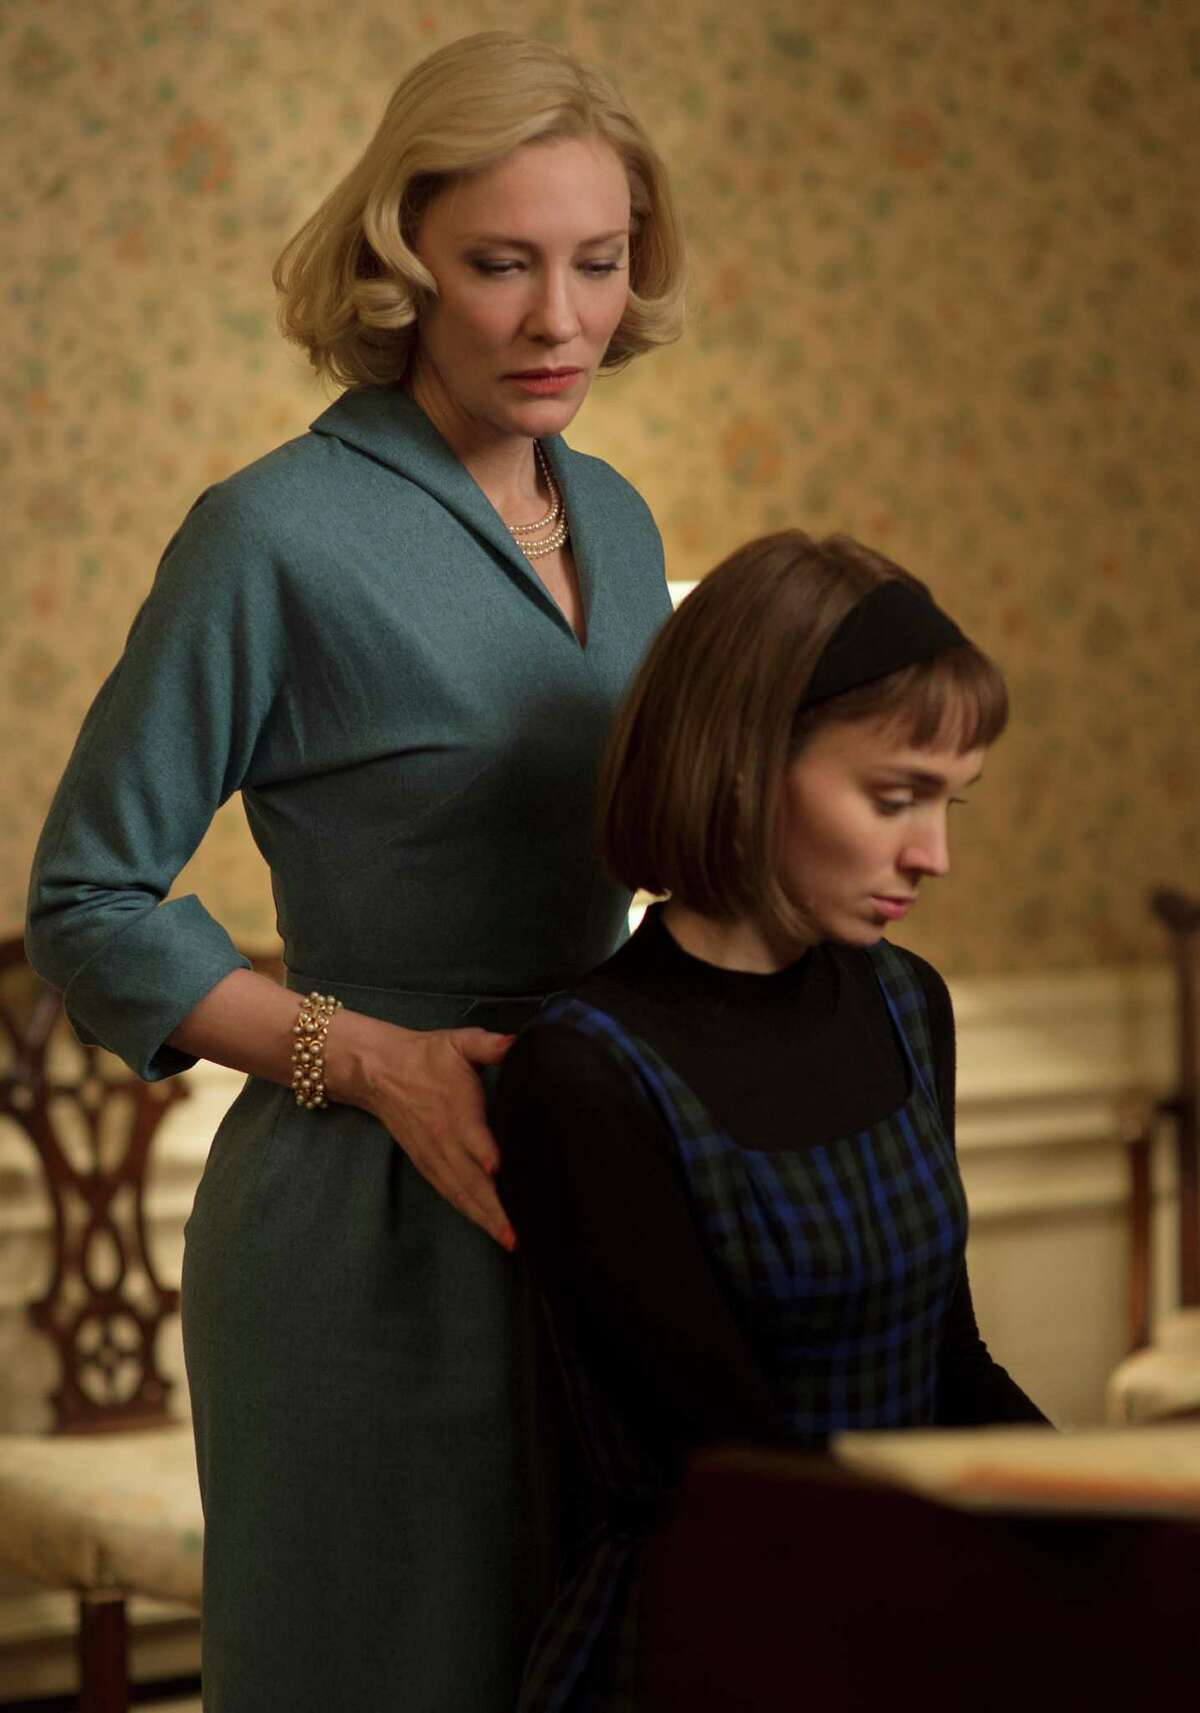 """This photo provided by The Weinstein Company shows Cate Blanchett, left, and Rooney Mara in a scene from the film, """"Carol."""" AP film writers Jake Coyle and Lindsey Bahr select their picks for the best movies of the year in 2015, including """"Ex Machina,"""" """"Carol,"""" """"Kumiko, The Treasure Hunter,"""" """"Spotlight,"""" and others. (Wilson Webb/The Weinstein Company via AP)"""